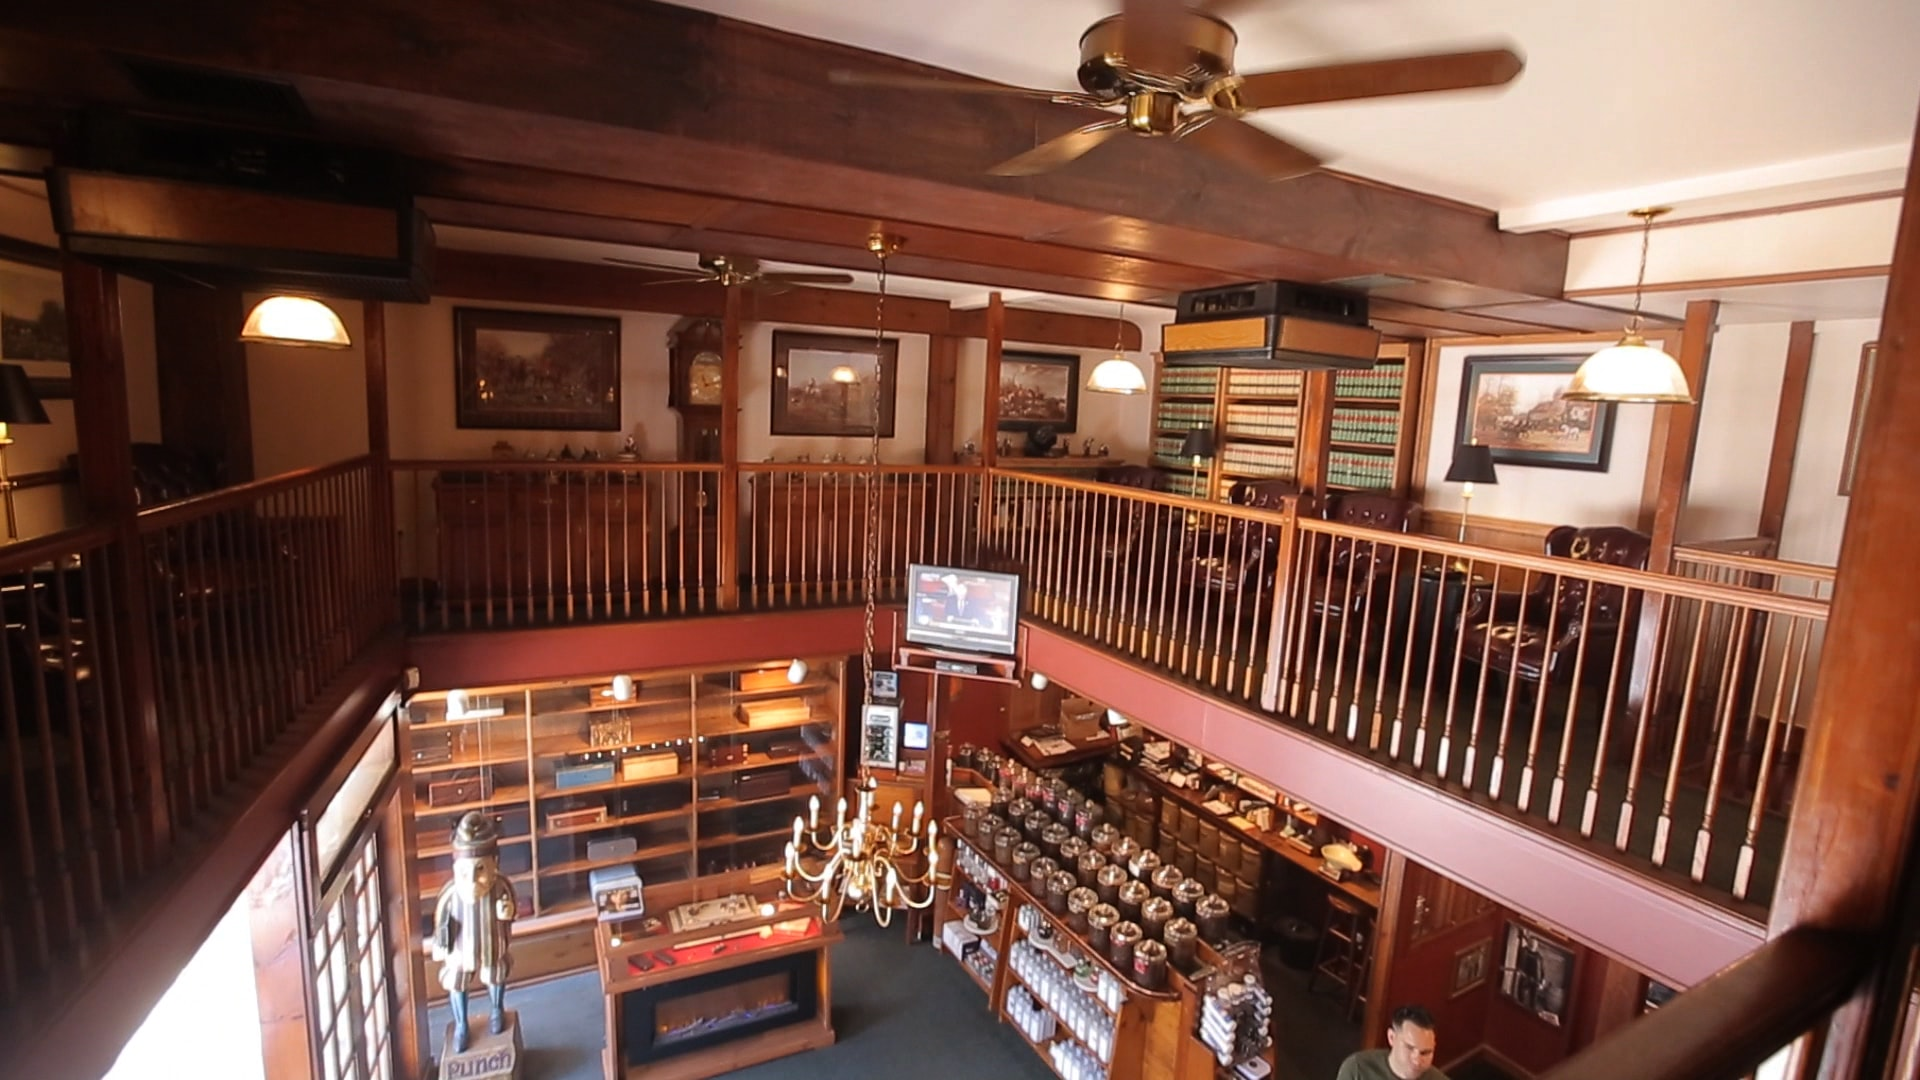 Visit our Mezzanine Lounge at    The Tobacco Shop of Ridgewood    &    Davidoff Lounge    Get Directions